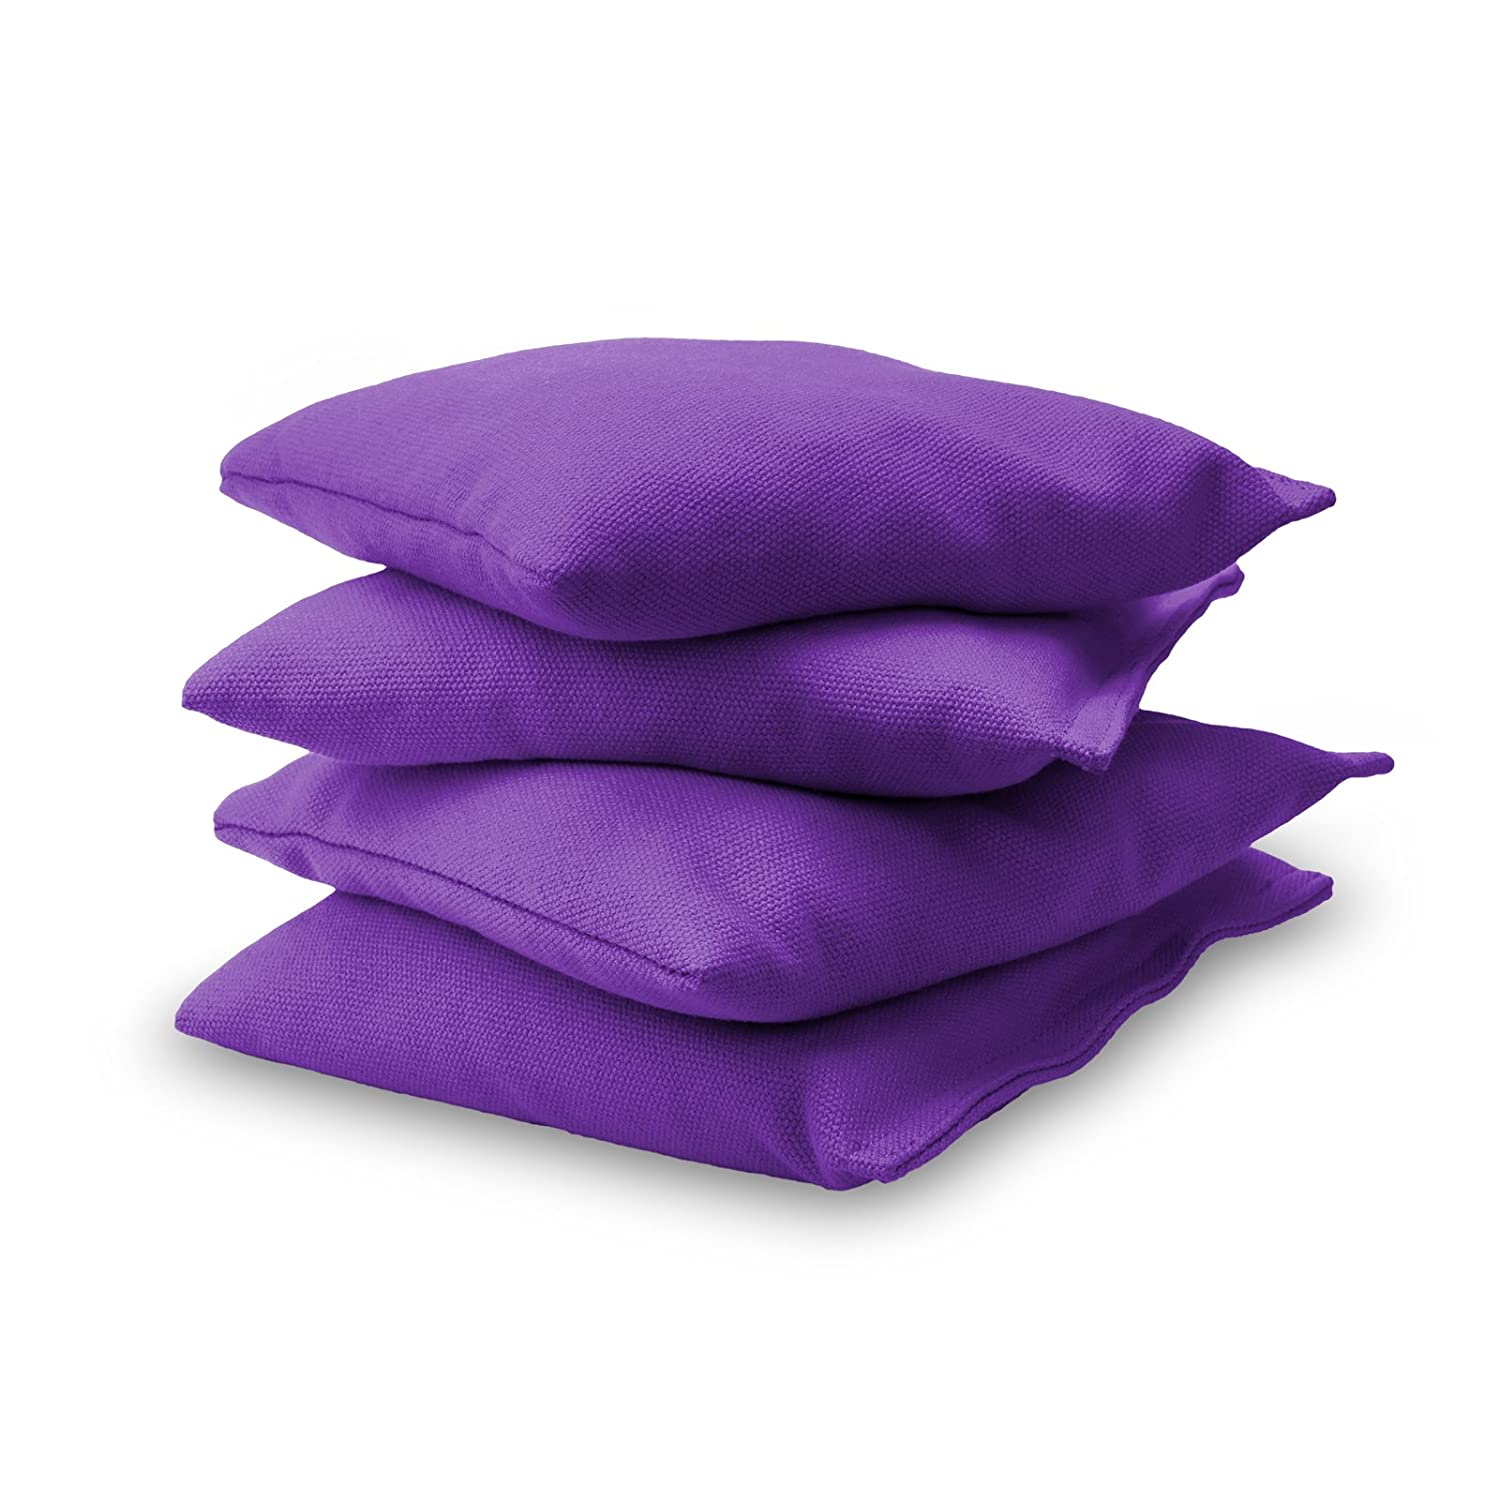 GoSports Premium Bean Bag (4 Set), Purple CH-BAGS-4-Purple